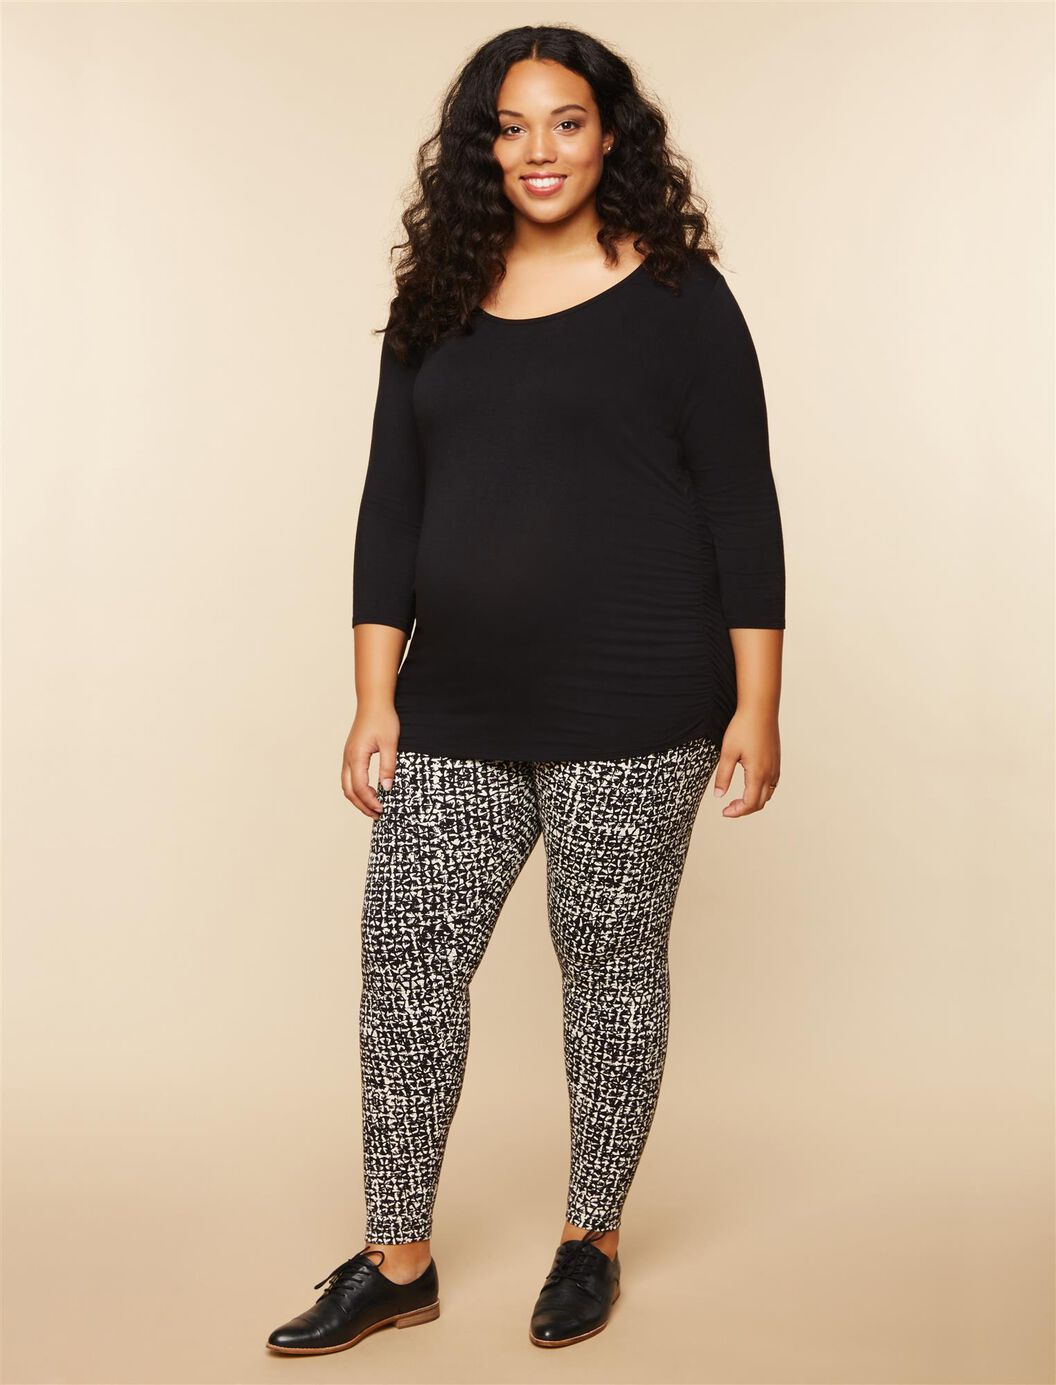 Plus Size Secret Fit Belly Maternity Leggings at Motherhood Maternity in Victor, NY | Tuggl